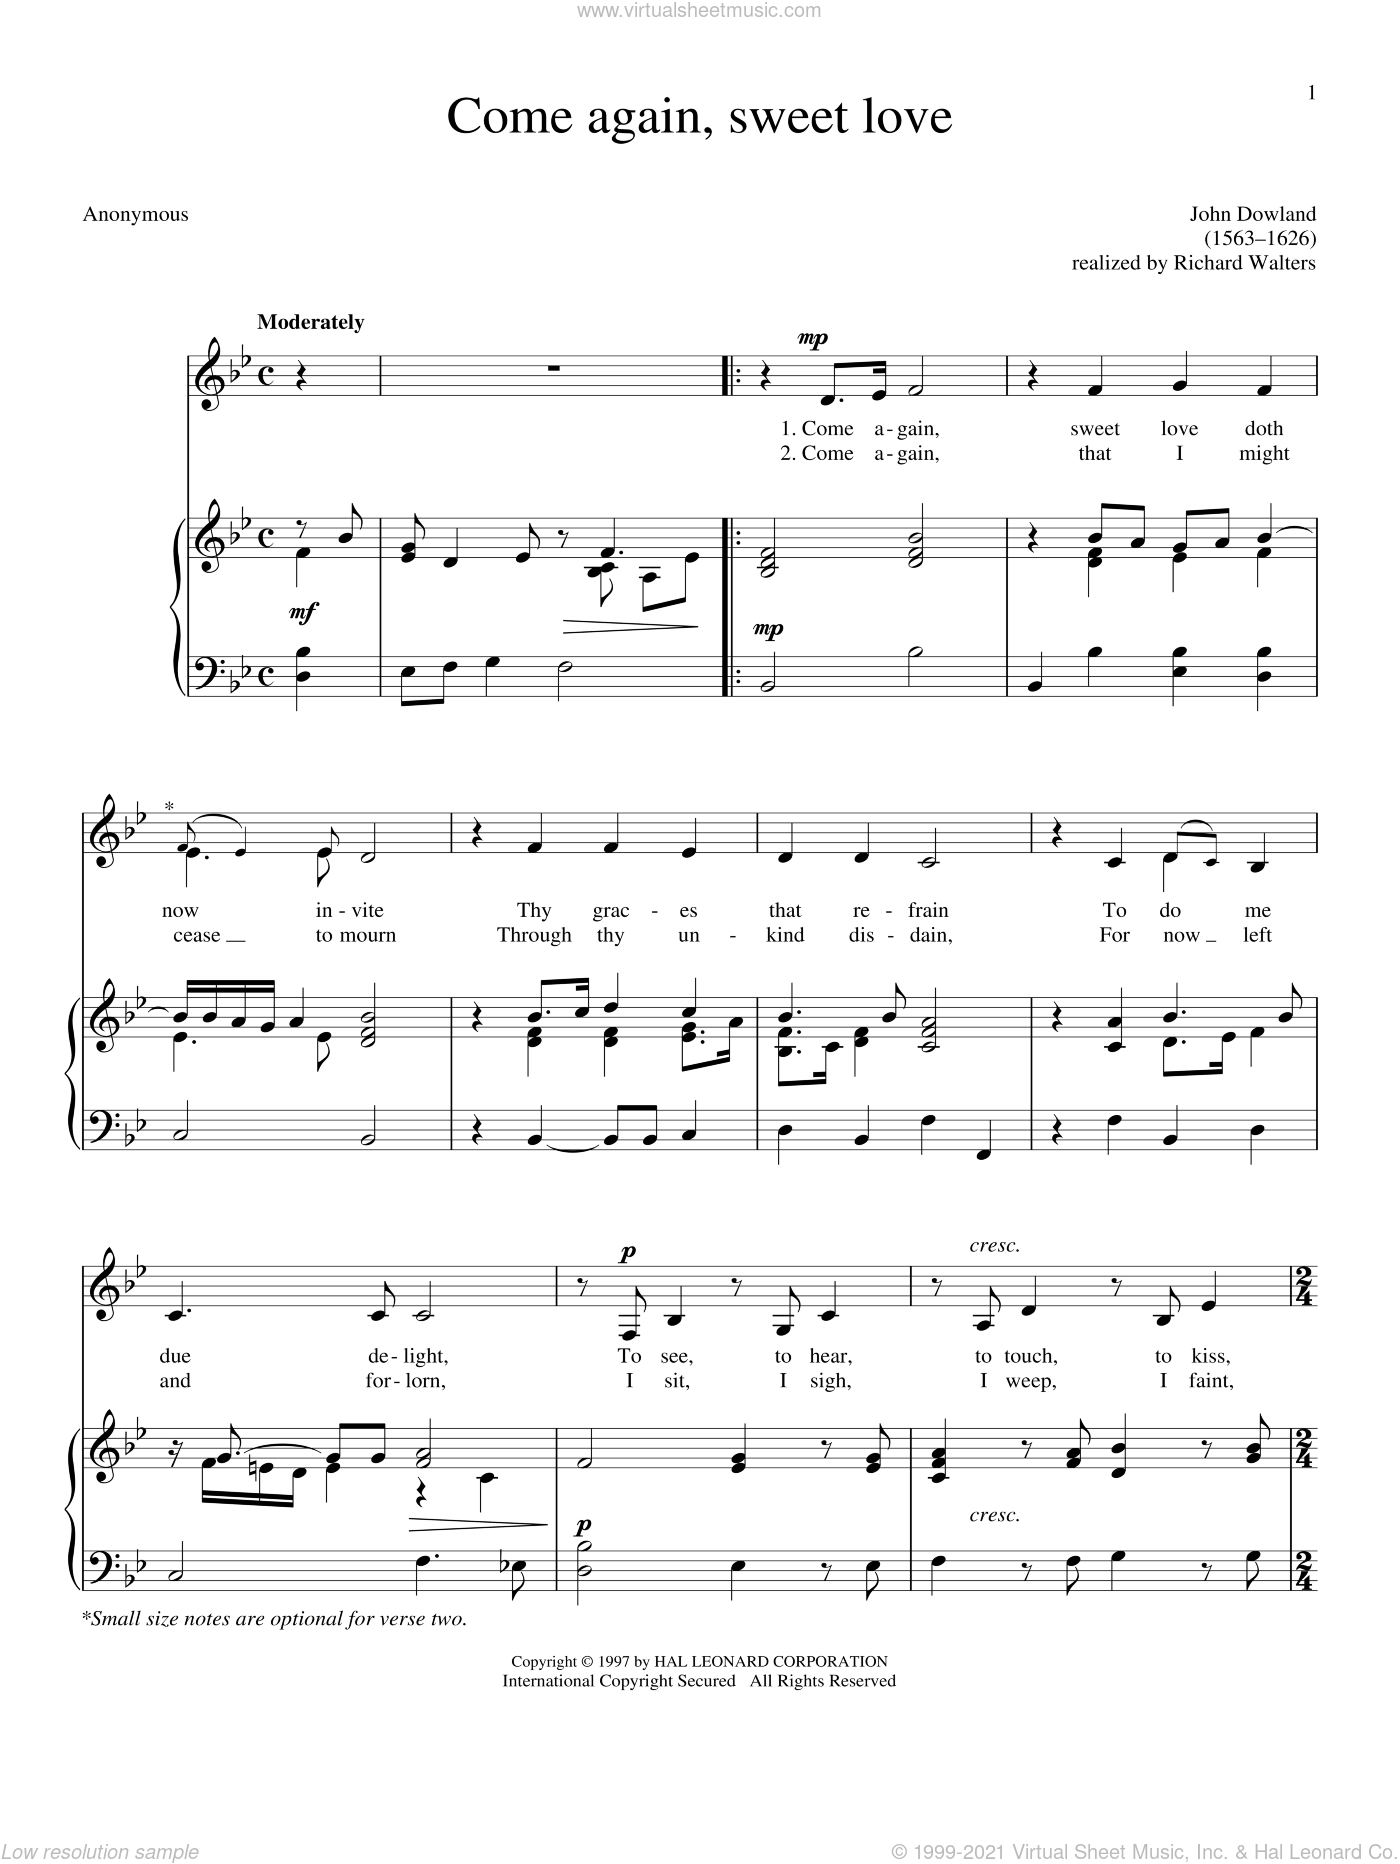 Come Again, Sweet Love (Dowland) sheet music for voice and piano by John Dowland